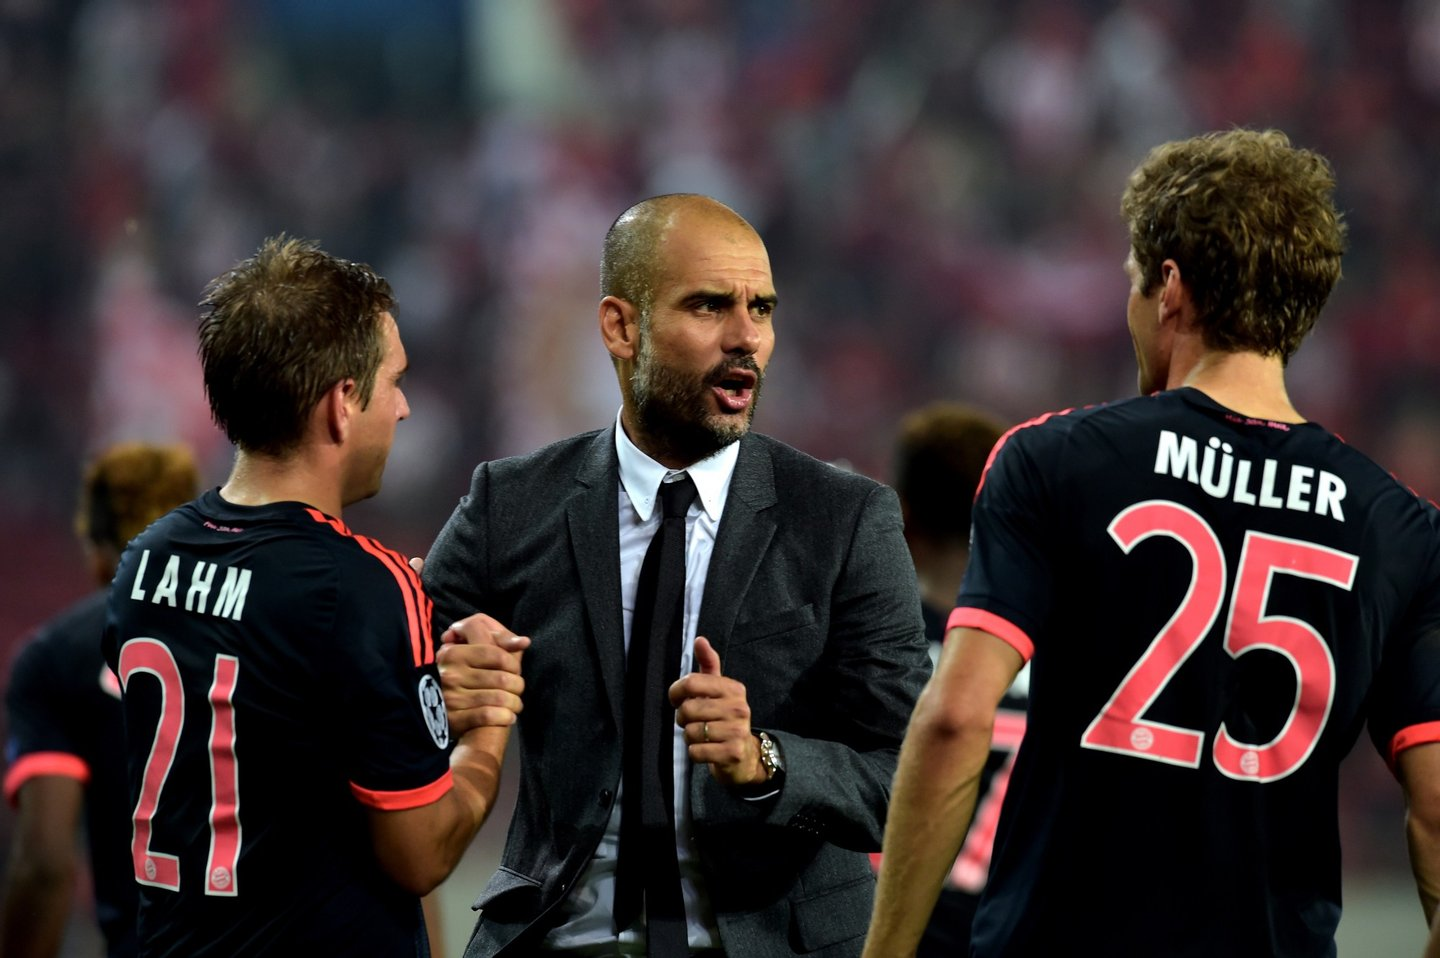 Bayern Munich's Spanish coach Josep Guardiola (C) speaks with Bayern Munich's German forward Thomas Mueller (R) after his team won against Olympiakos during the Group F Champions League football match at the Karaiskaki stadium in Athens on September 16, 2015. AFP PHOTO / ARIS MESSINIS (Photo credit should read ARIS MESSINIS/AFP/Getty Images)